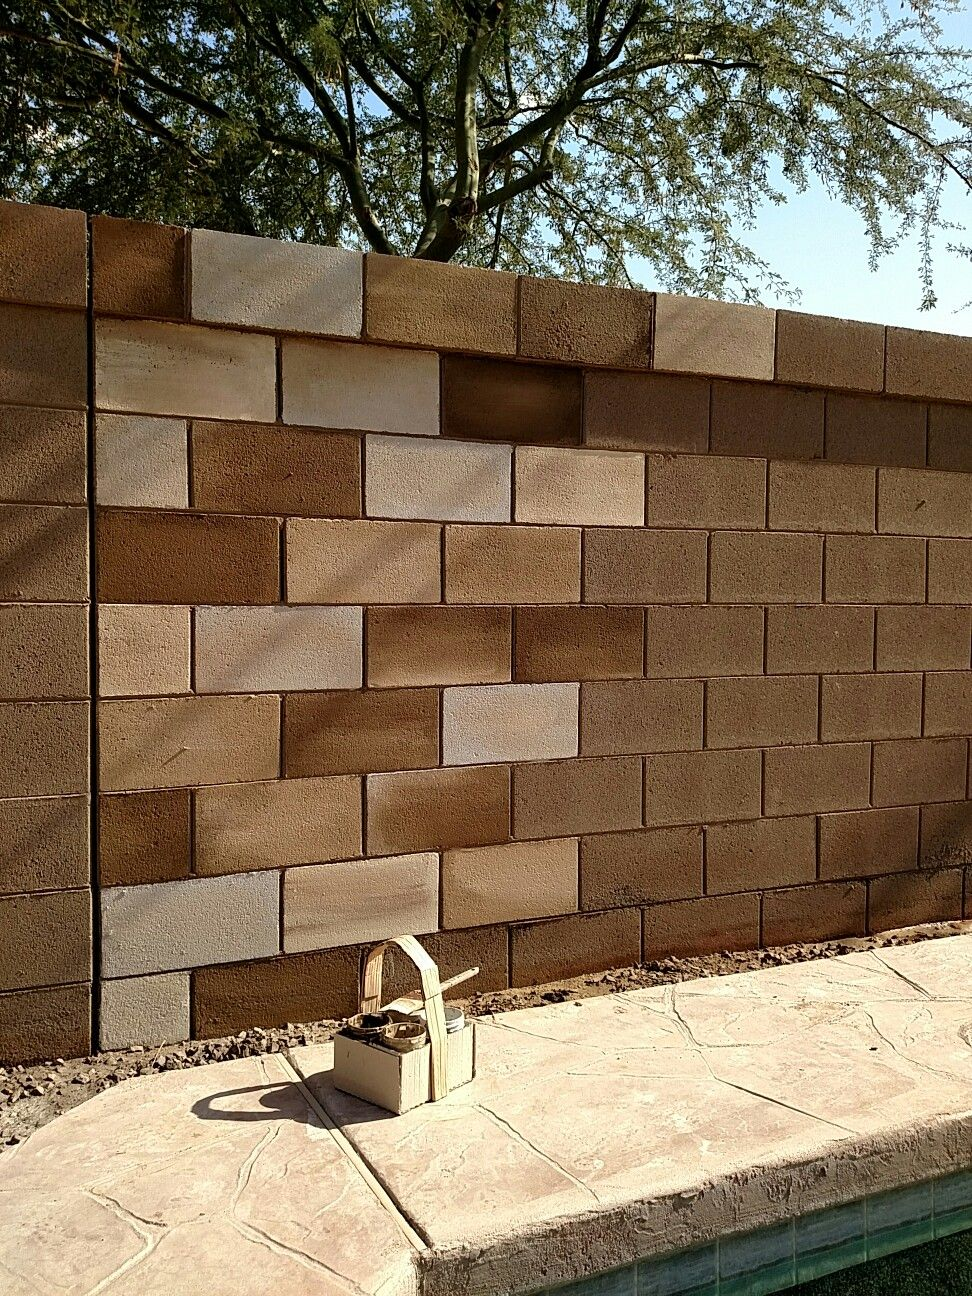 Delightful Cinder/ Hollow Block Wall.